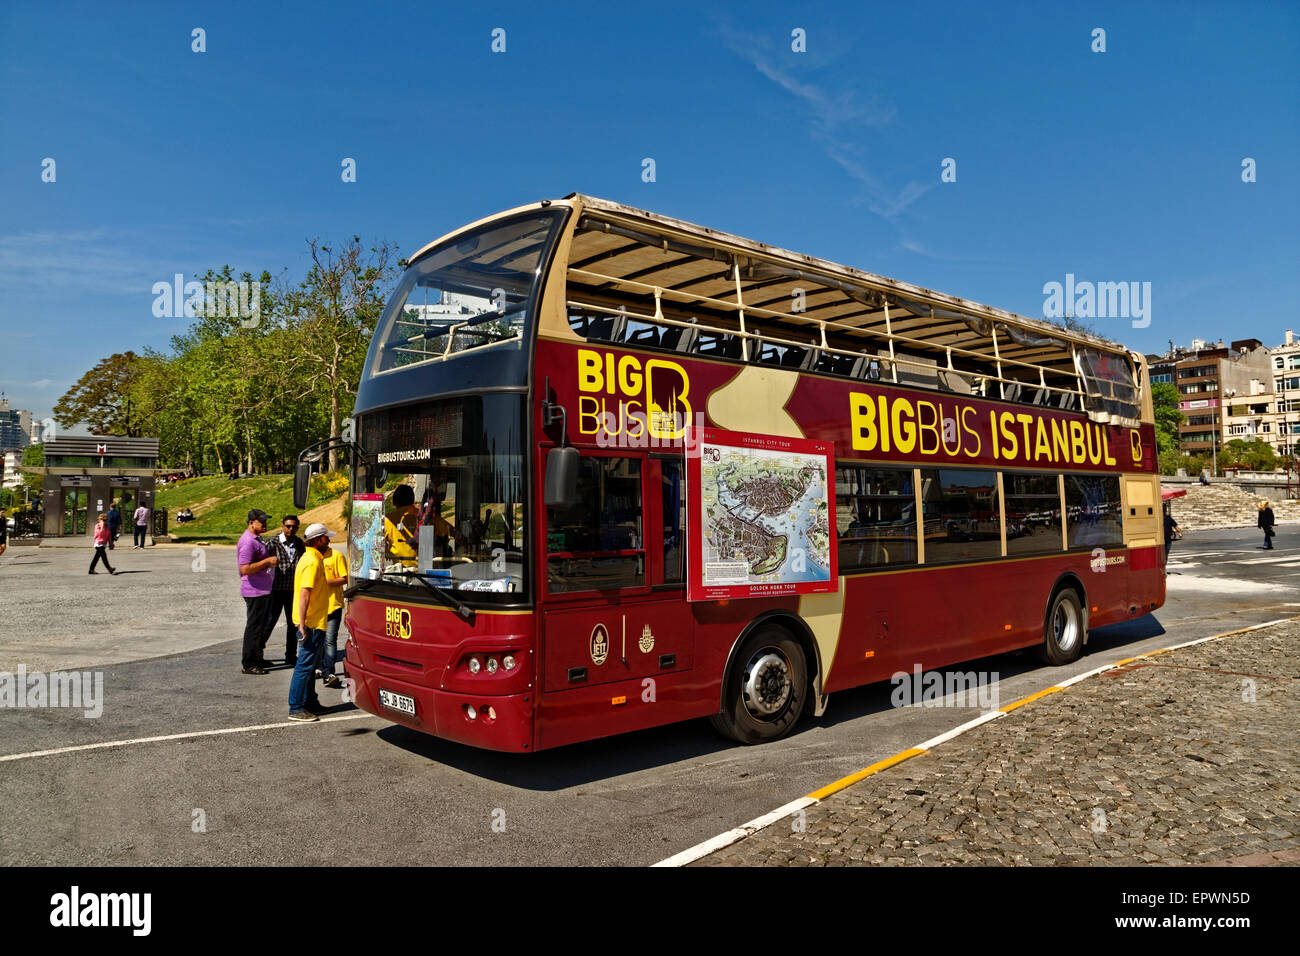 Istanbul Big Bus open-topped double decker tourism bus at Taksim Square, Istanbul, Turkey. - Stock Image